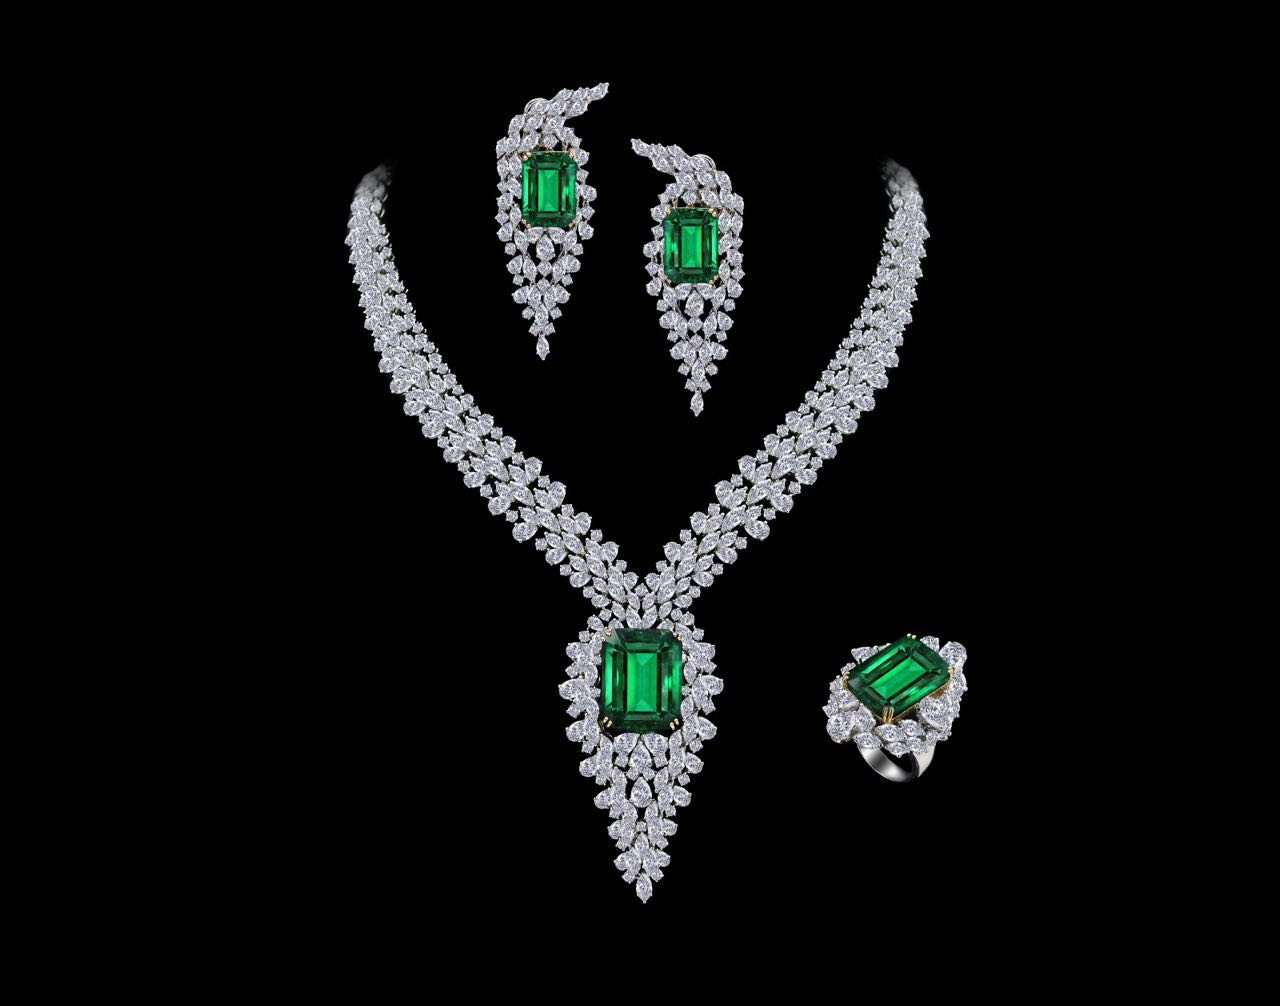 Diamond and emerald necklace, earrings and ring set